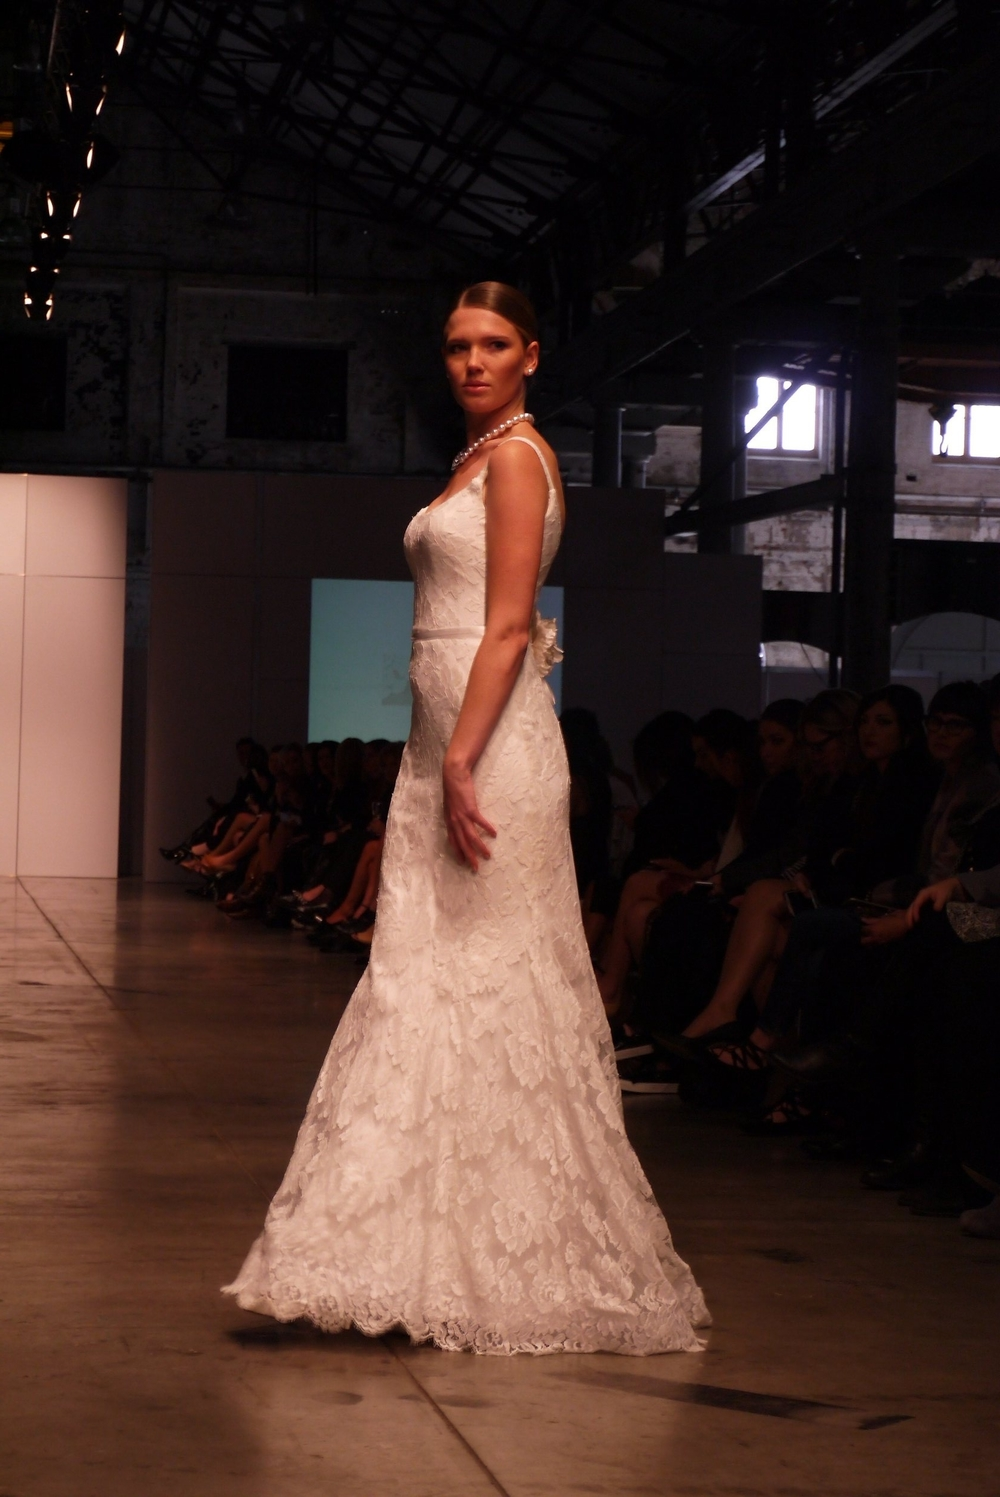 10 Tanya Anic Bridal_Summer gown design australian bridal fashion week sydney.jpg